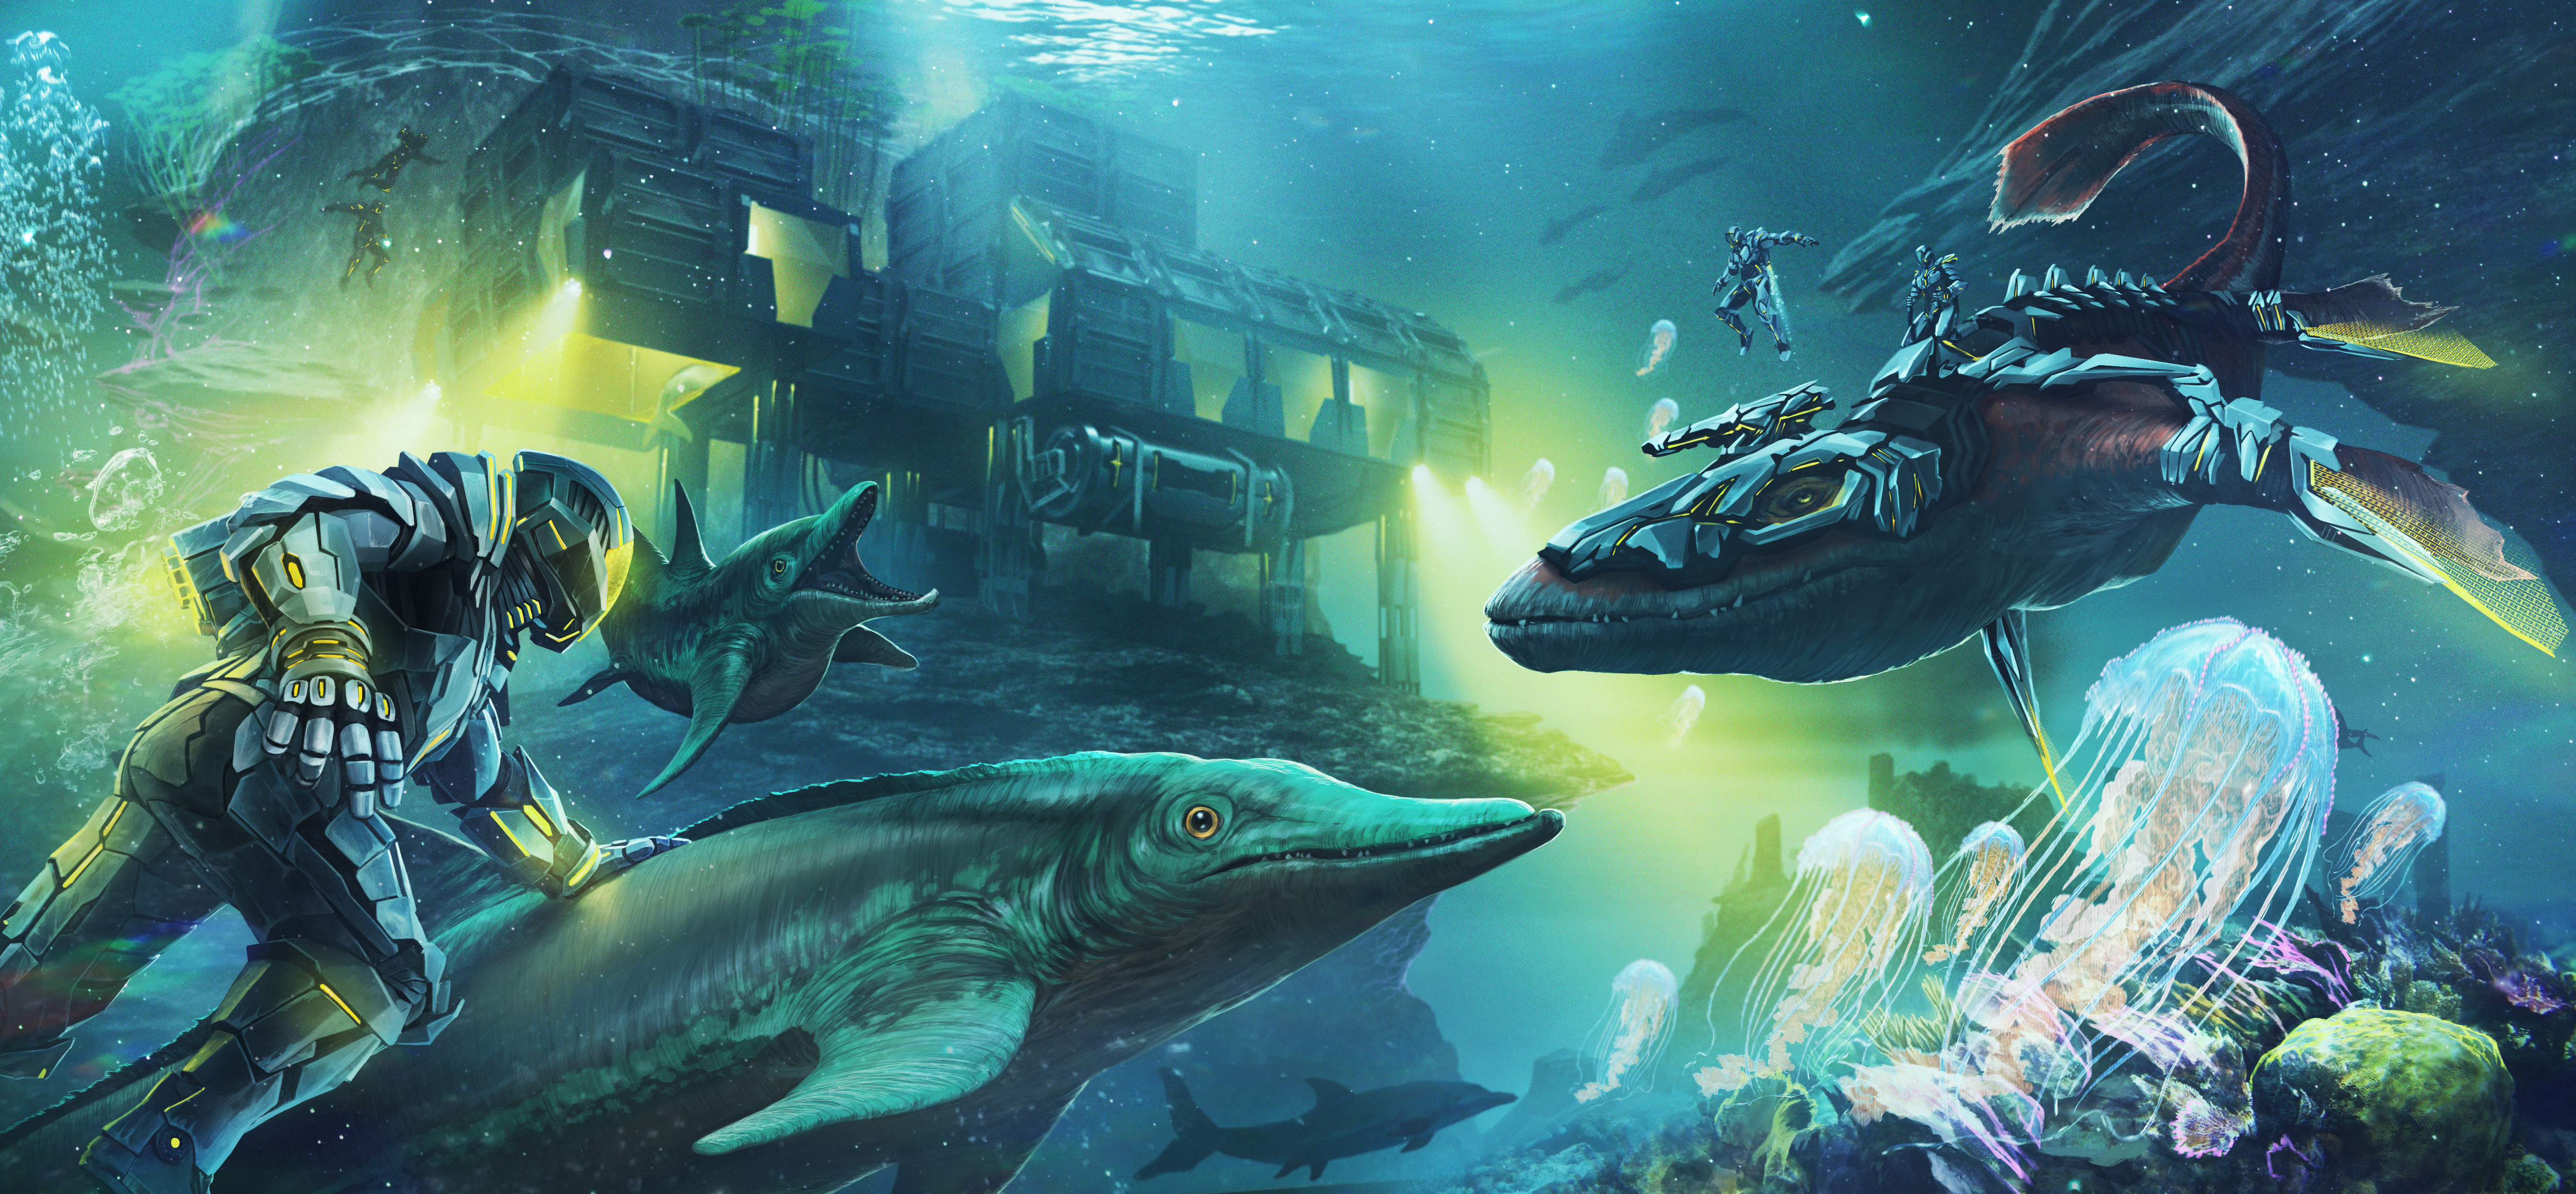 ark tek tier update dino lasers and cyber suits coming soon pc gamer